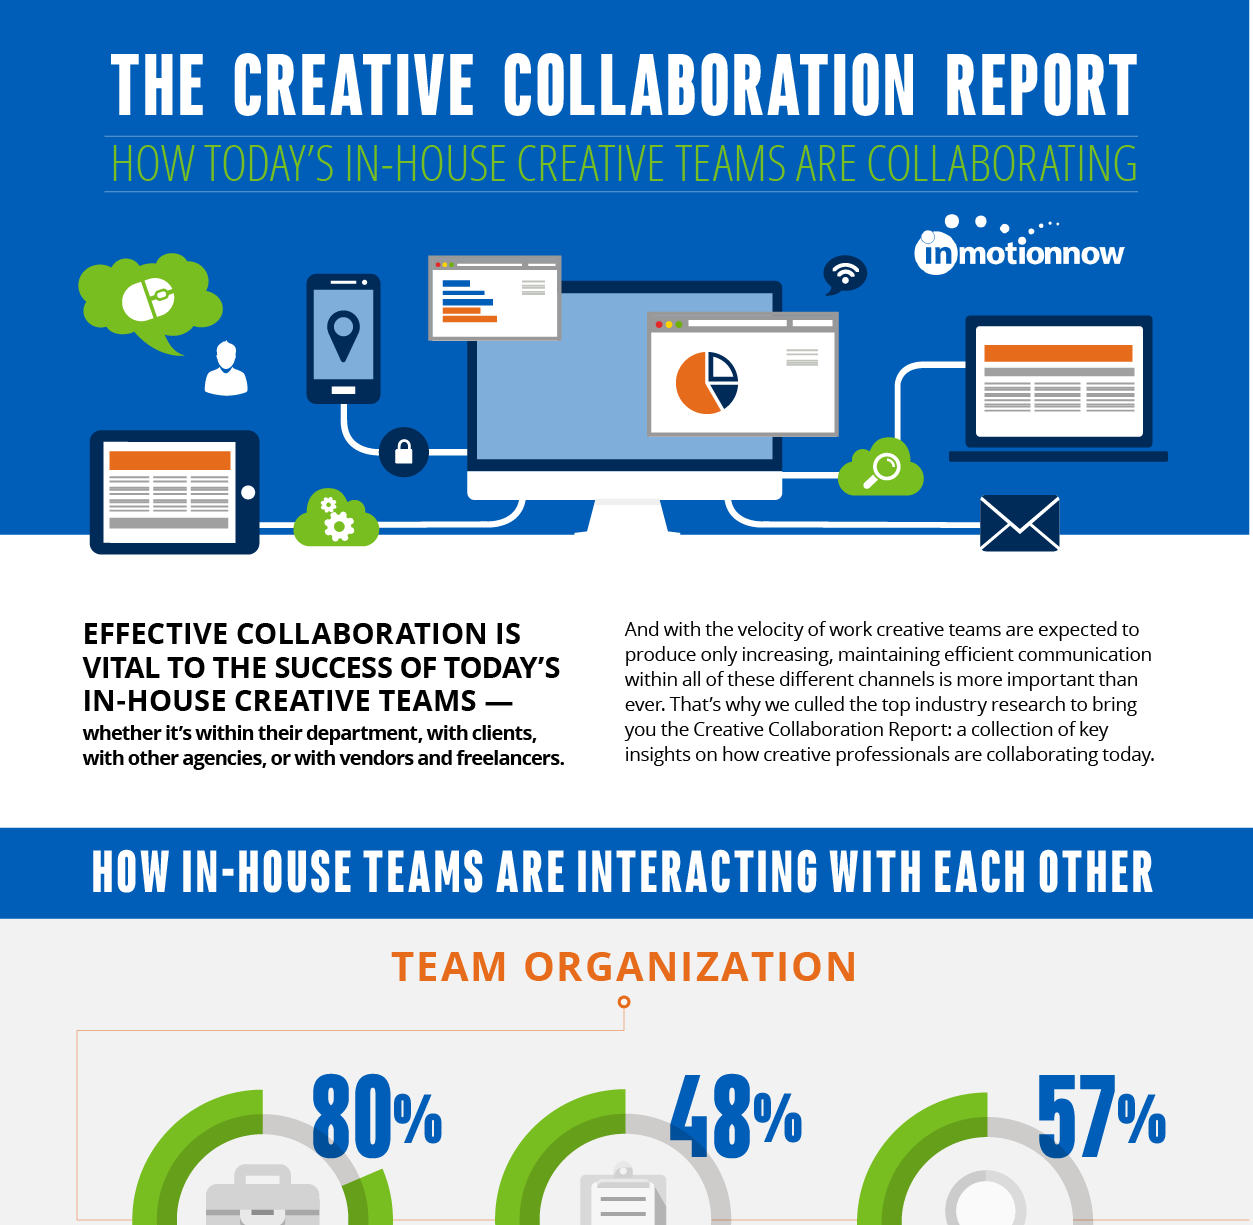 ddbded3dcc16 The Creative Collaboration Report